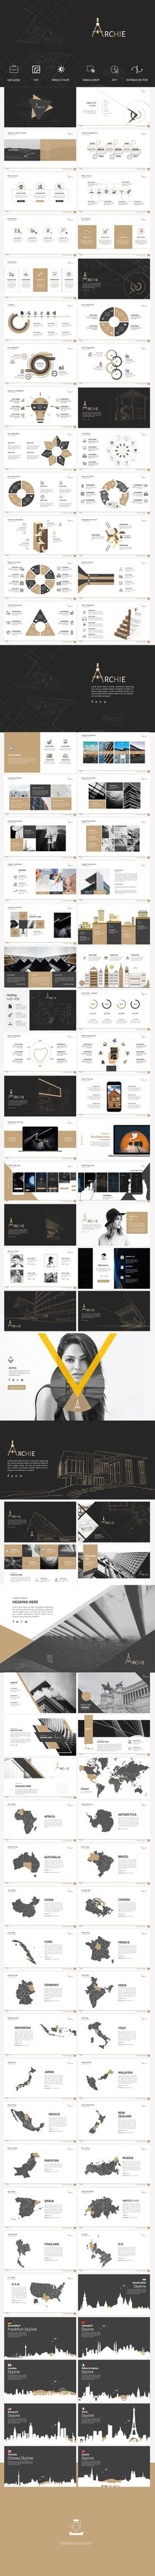 Archie Presentation Template - #Business #PowerPoint #Templates Download here: